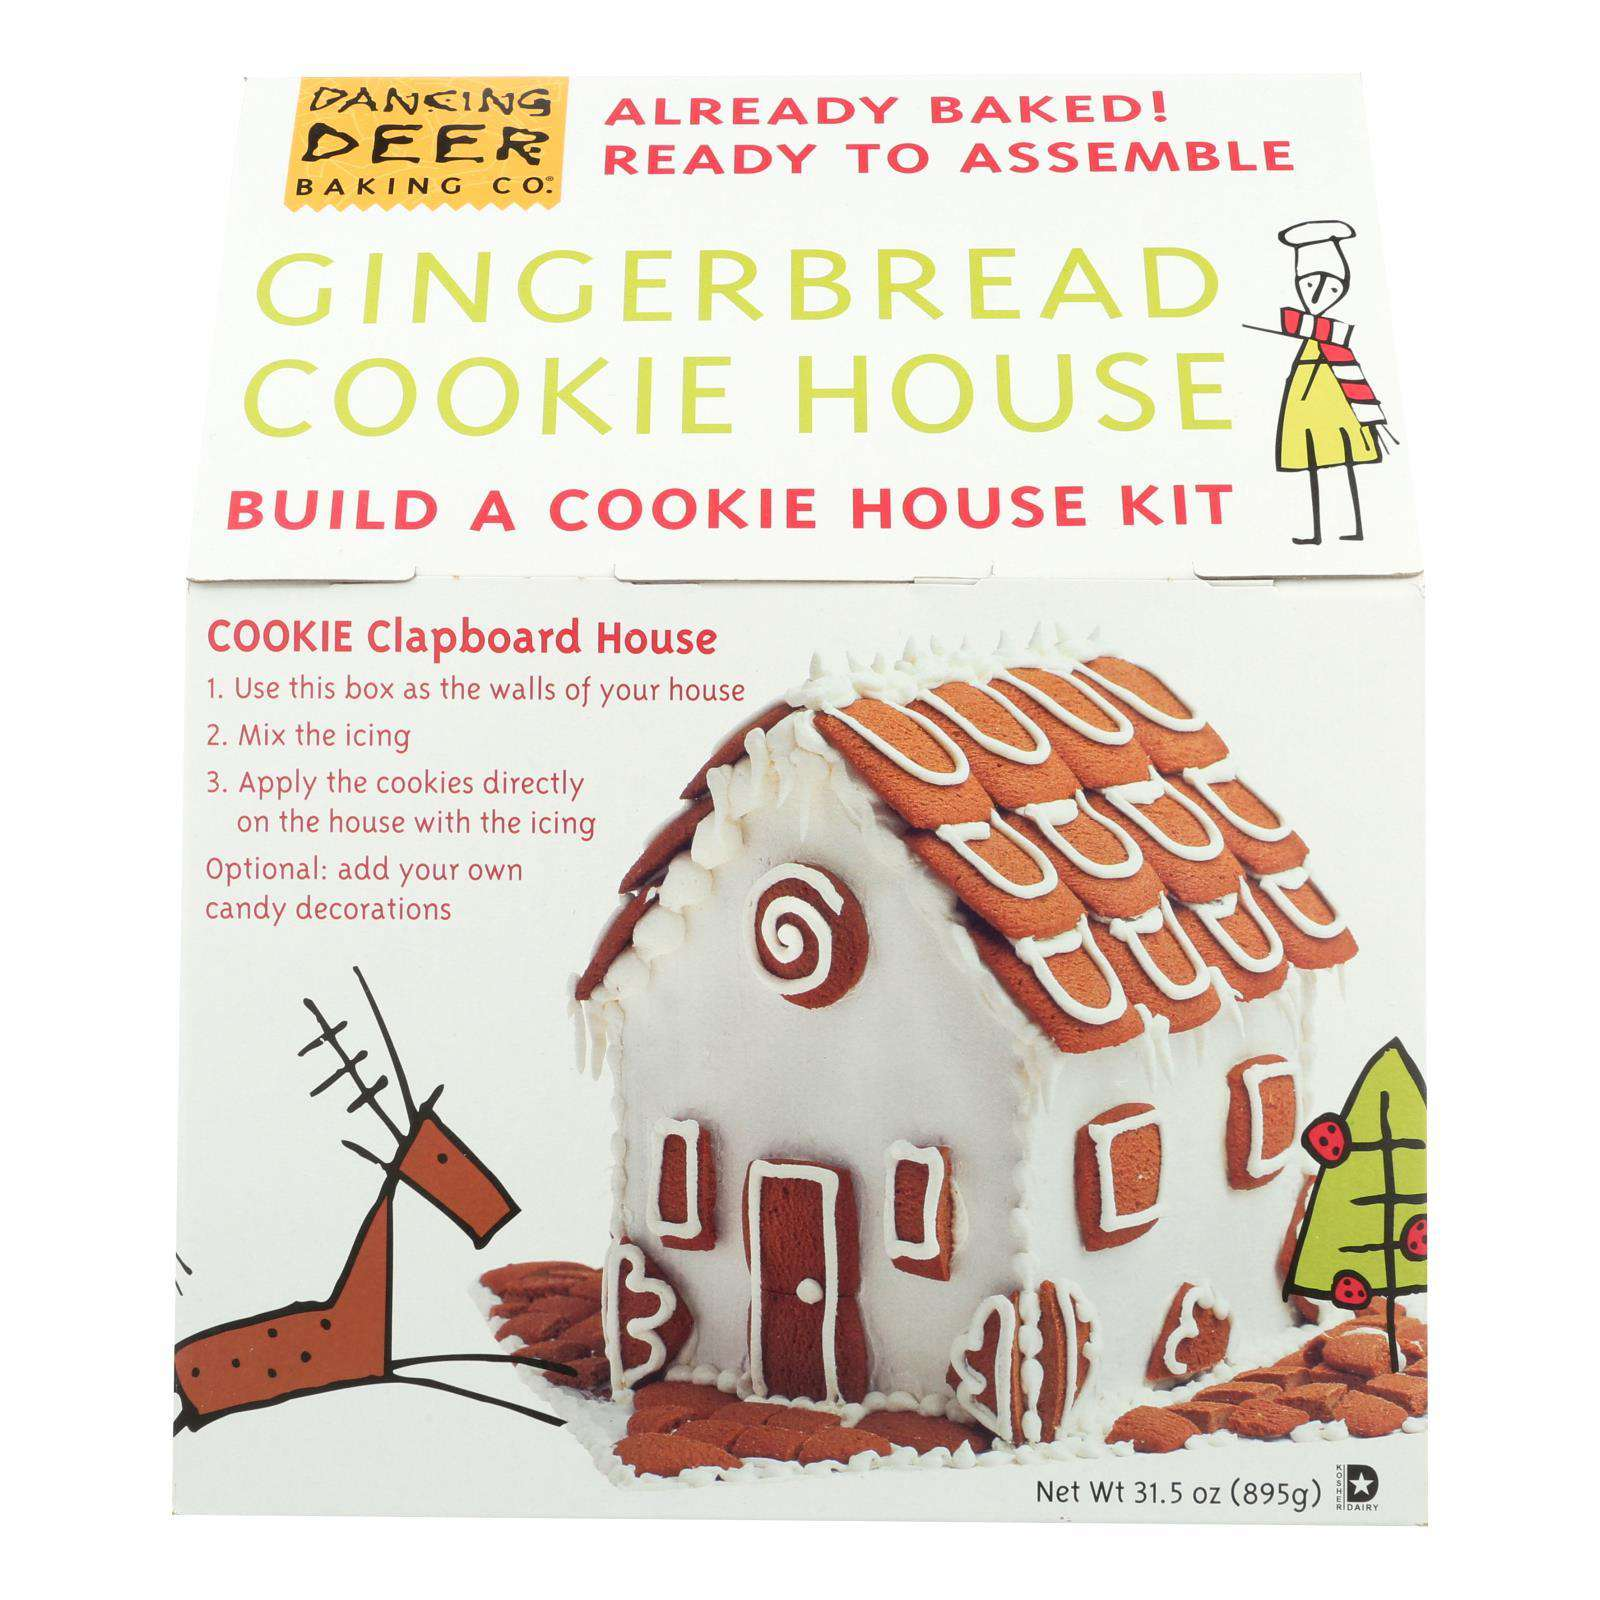 Dancing Deer Baking Company - Pre-baked Gingerbread House Kit - Case Of 6 - Count - BeeGreen